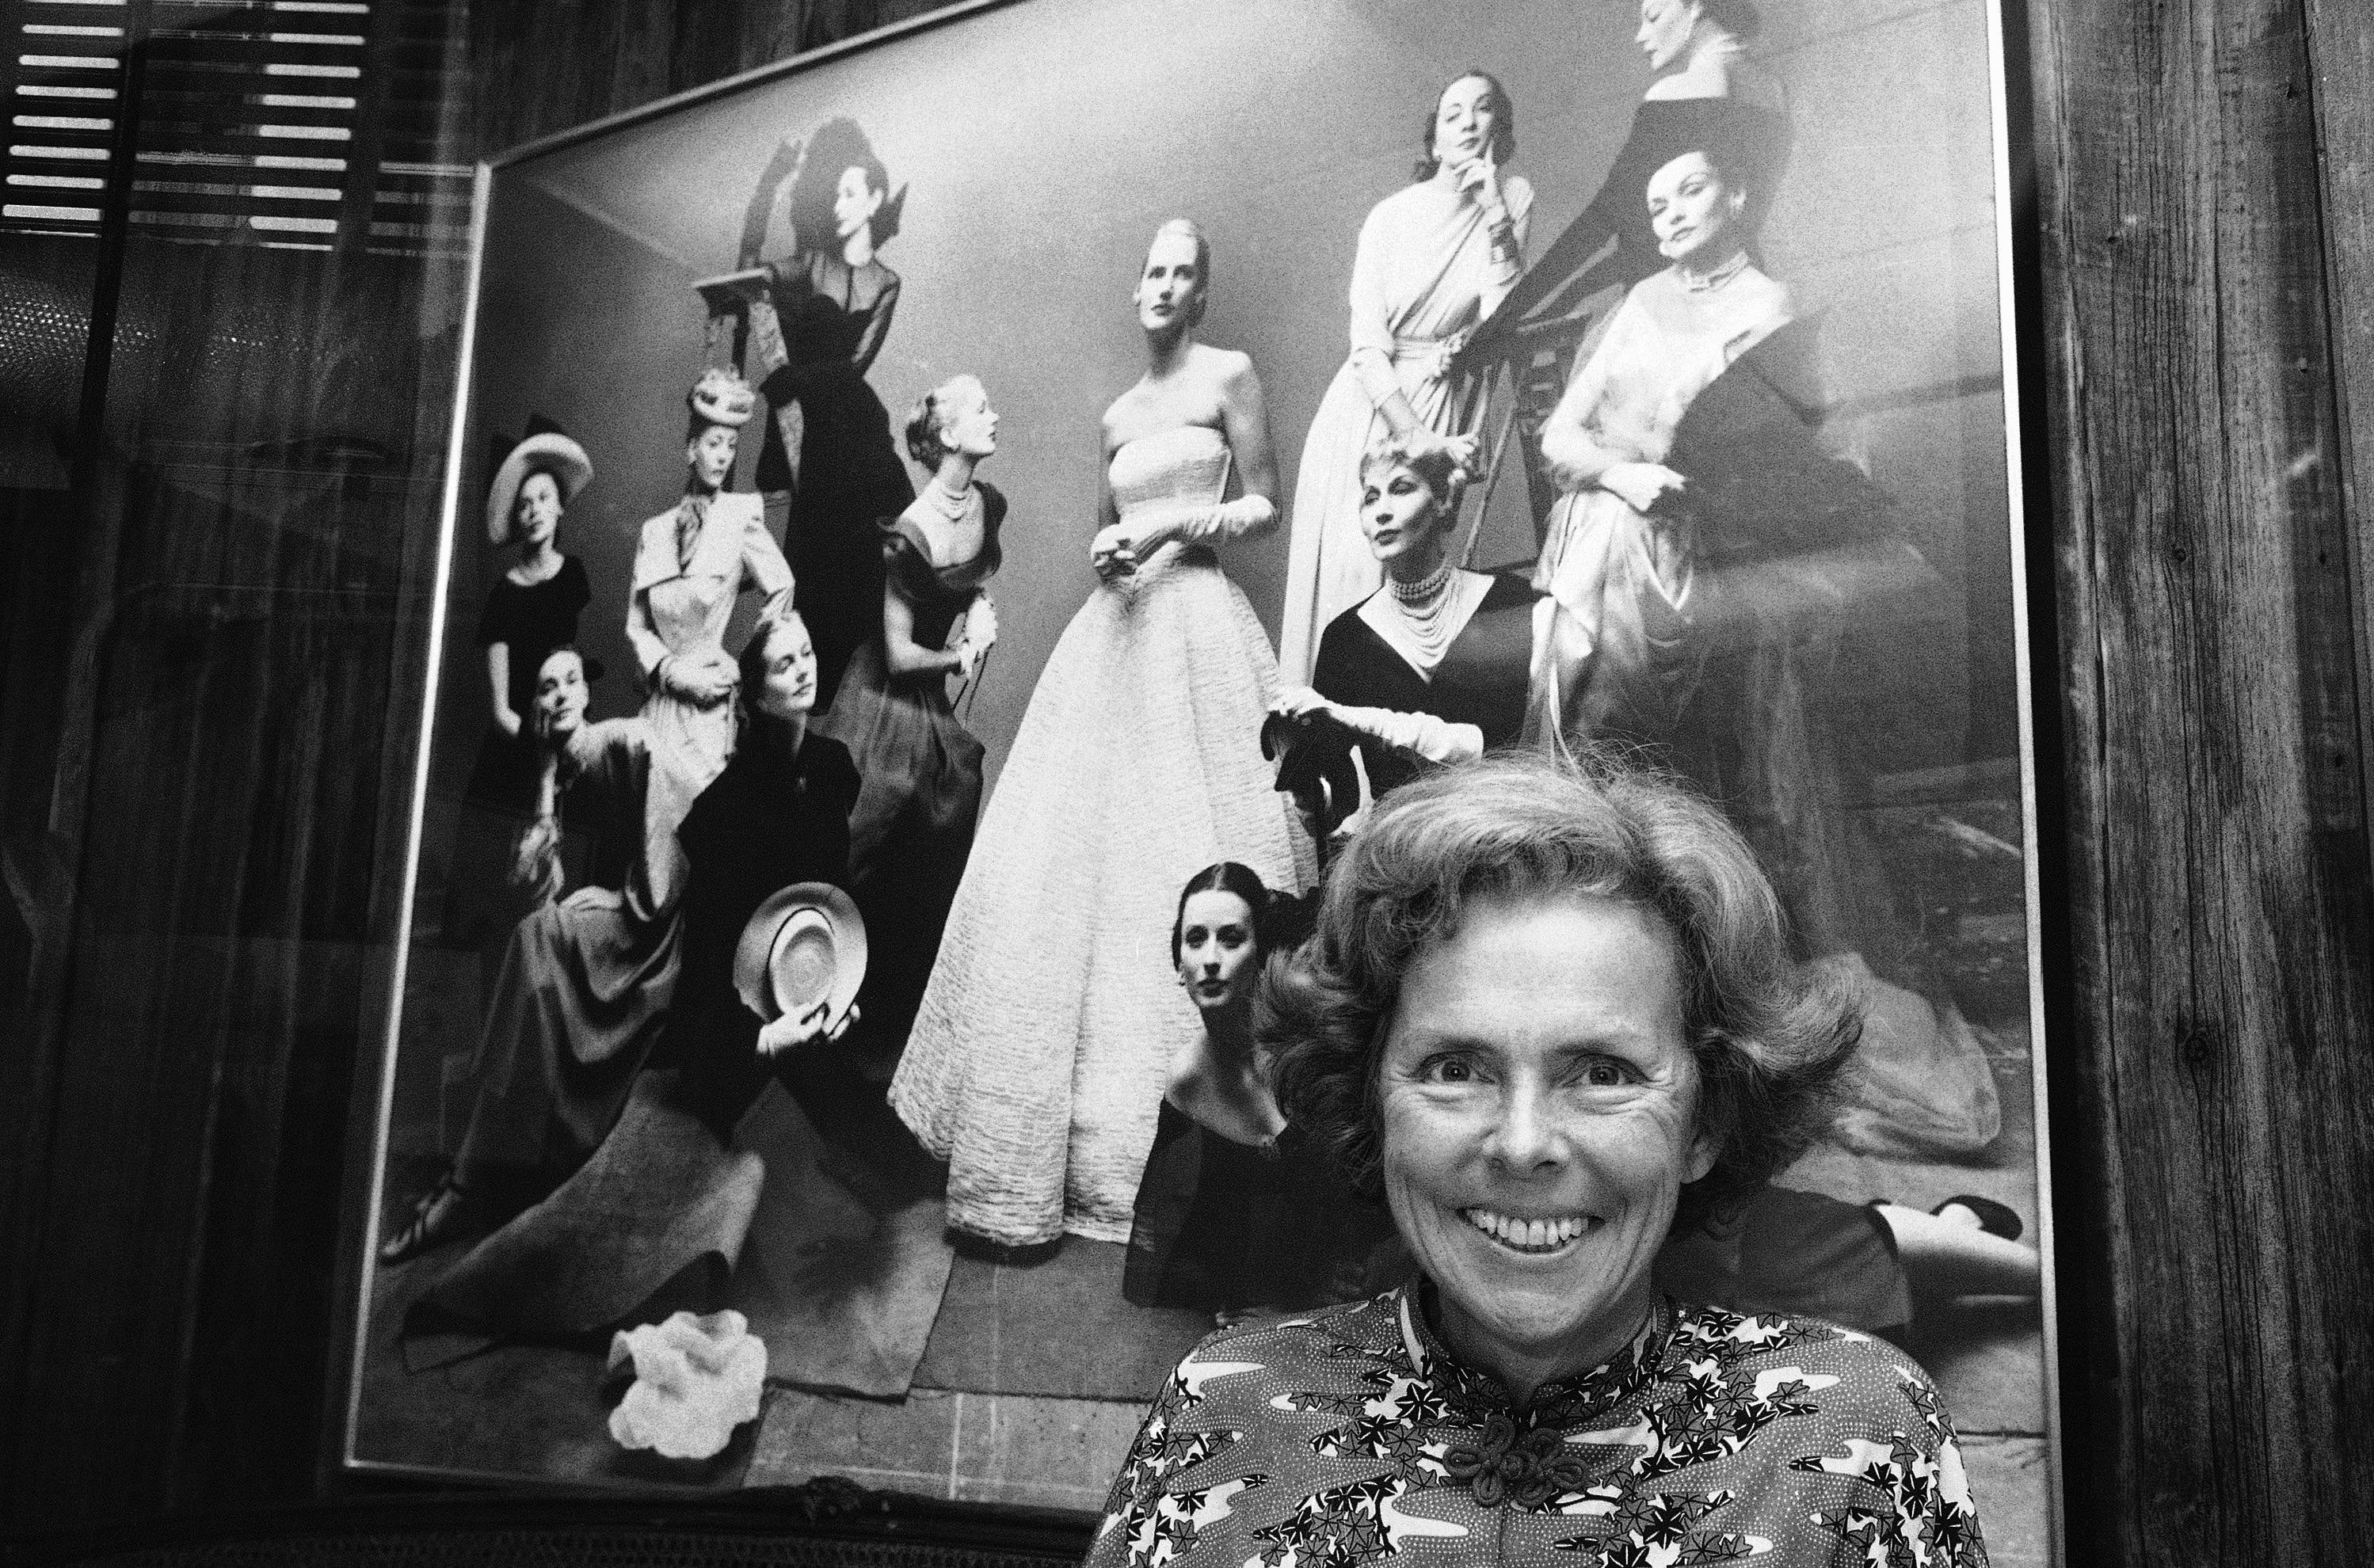 Through her work at Ford Models Inc., Eileen Ford, seen here in a photo from 1977, shaped a generation's standards of beauty as she built an empire and launched the careers of Candice Bergen, Lauren Hutton and Jane Fonda. Ford died Wednesday. She was 92.